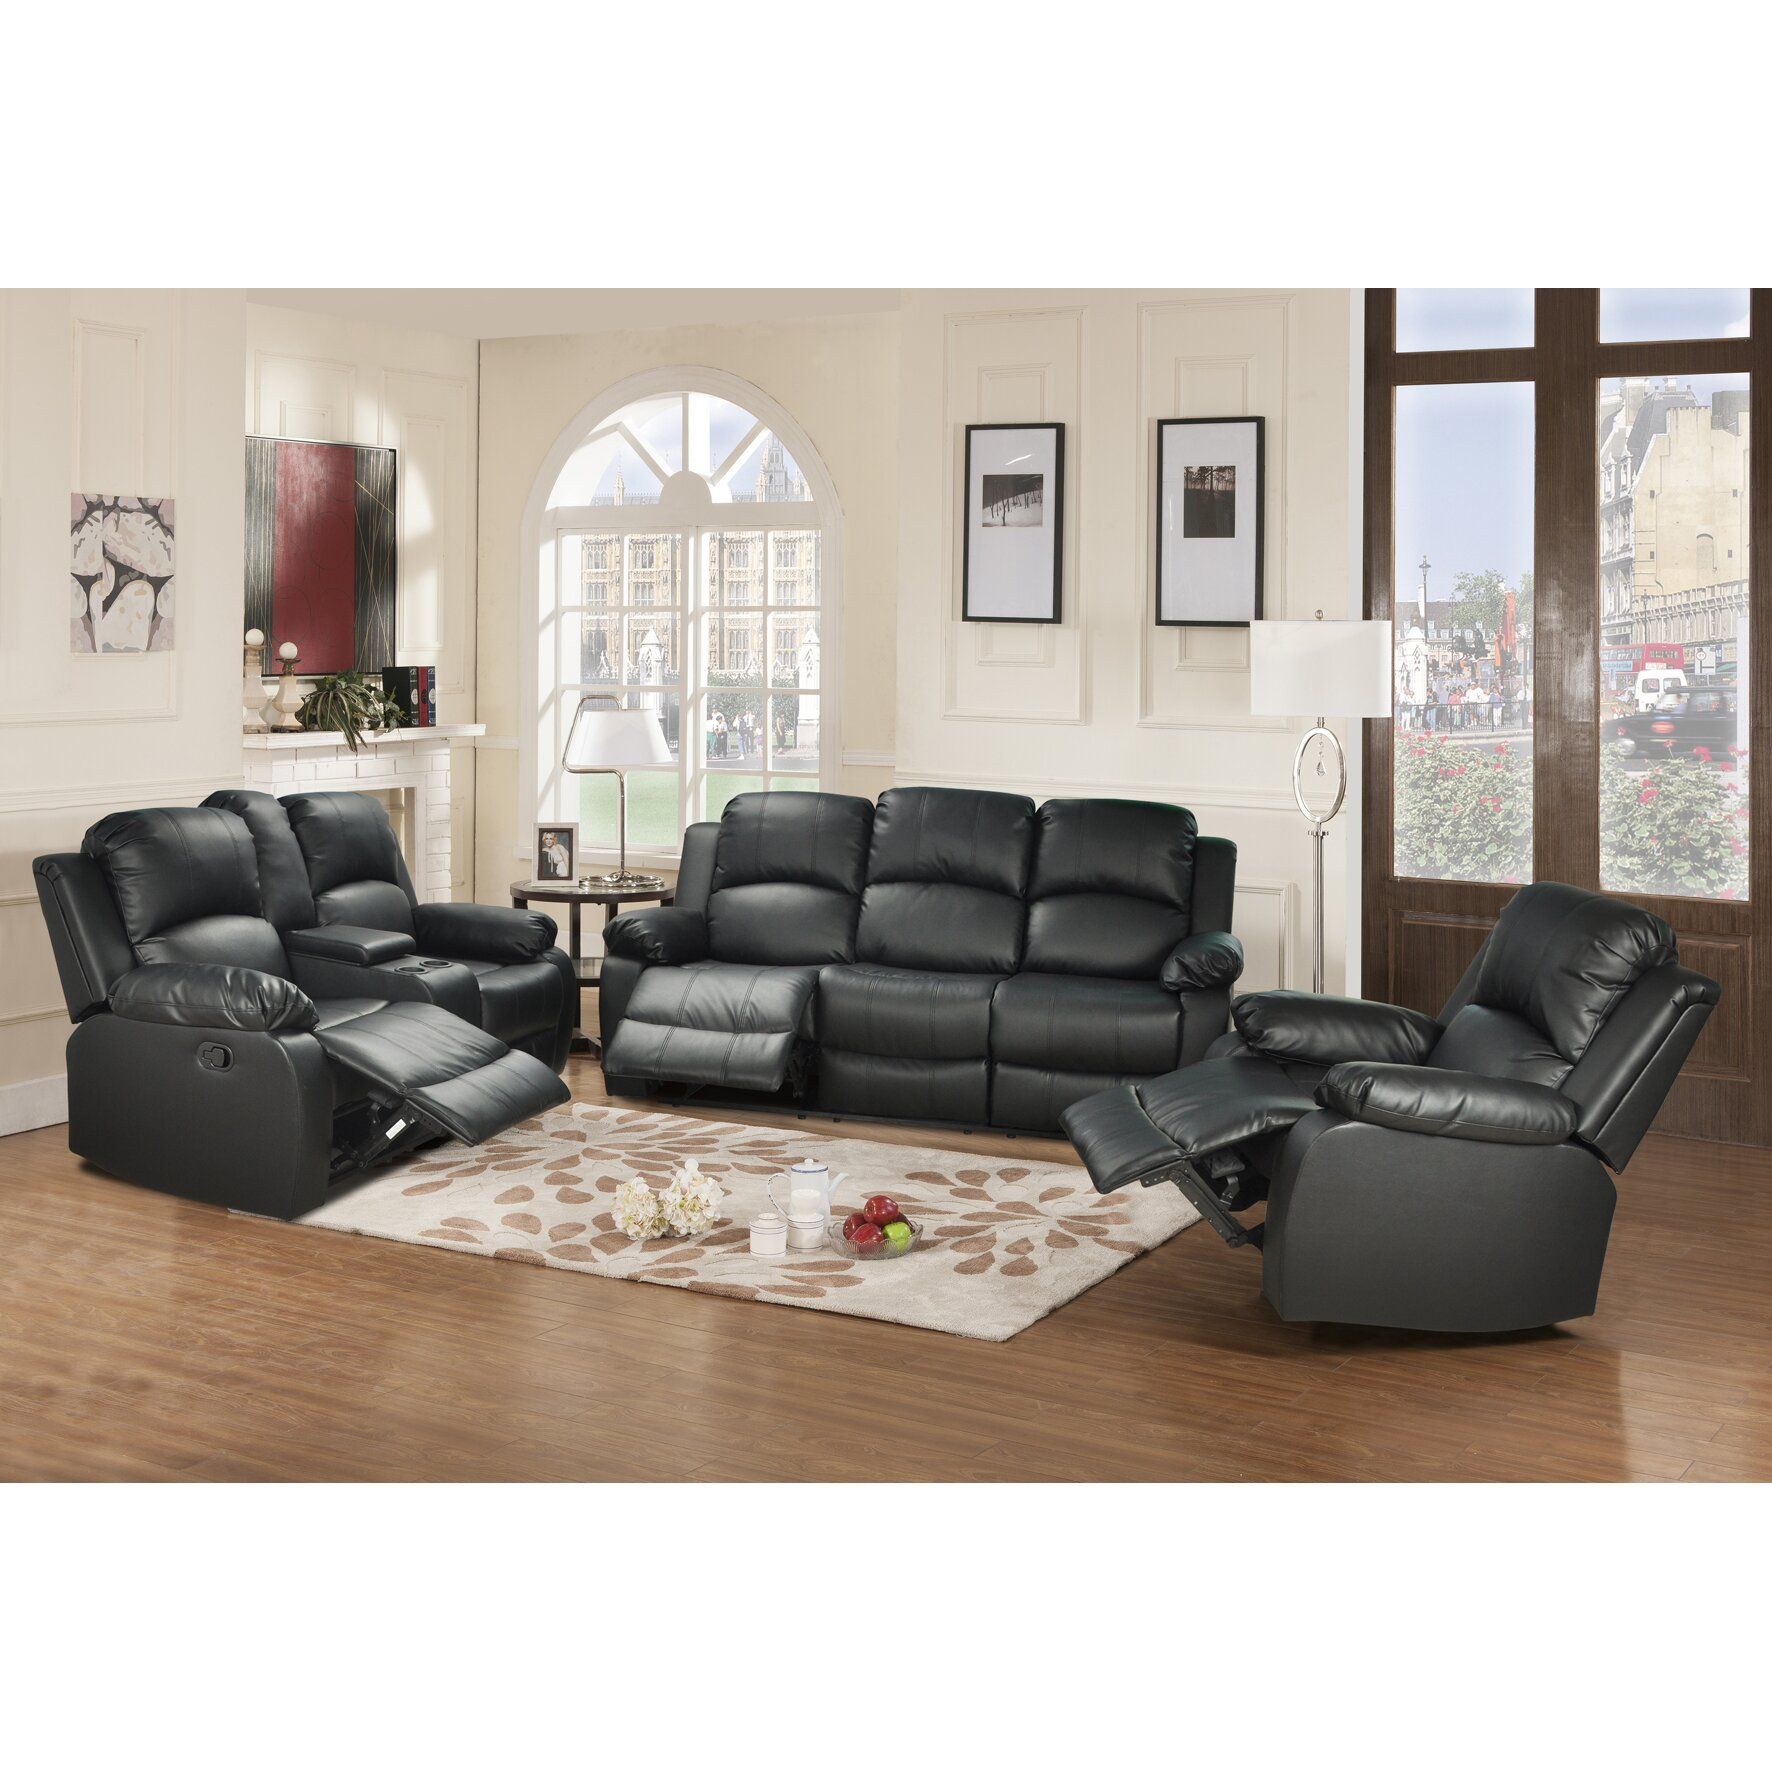 Beverly fine furniture amado 3 piece reclining living room for Living room 3 piece sets